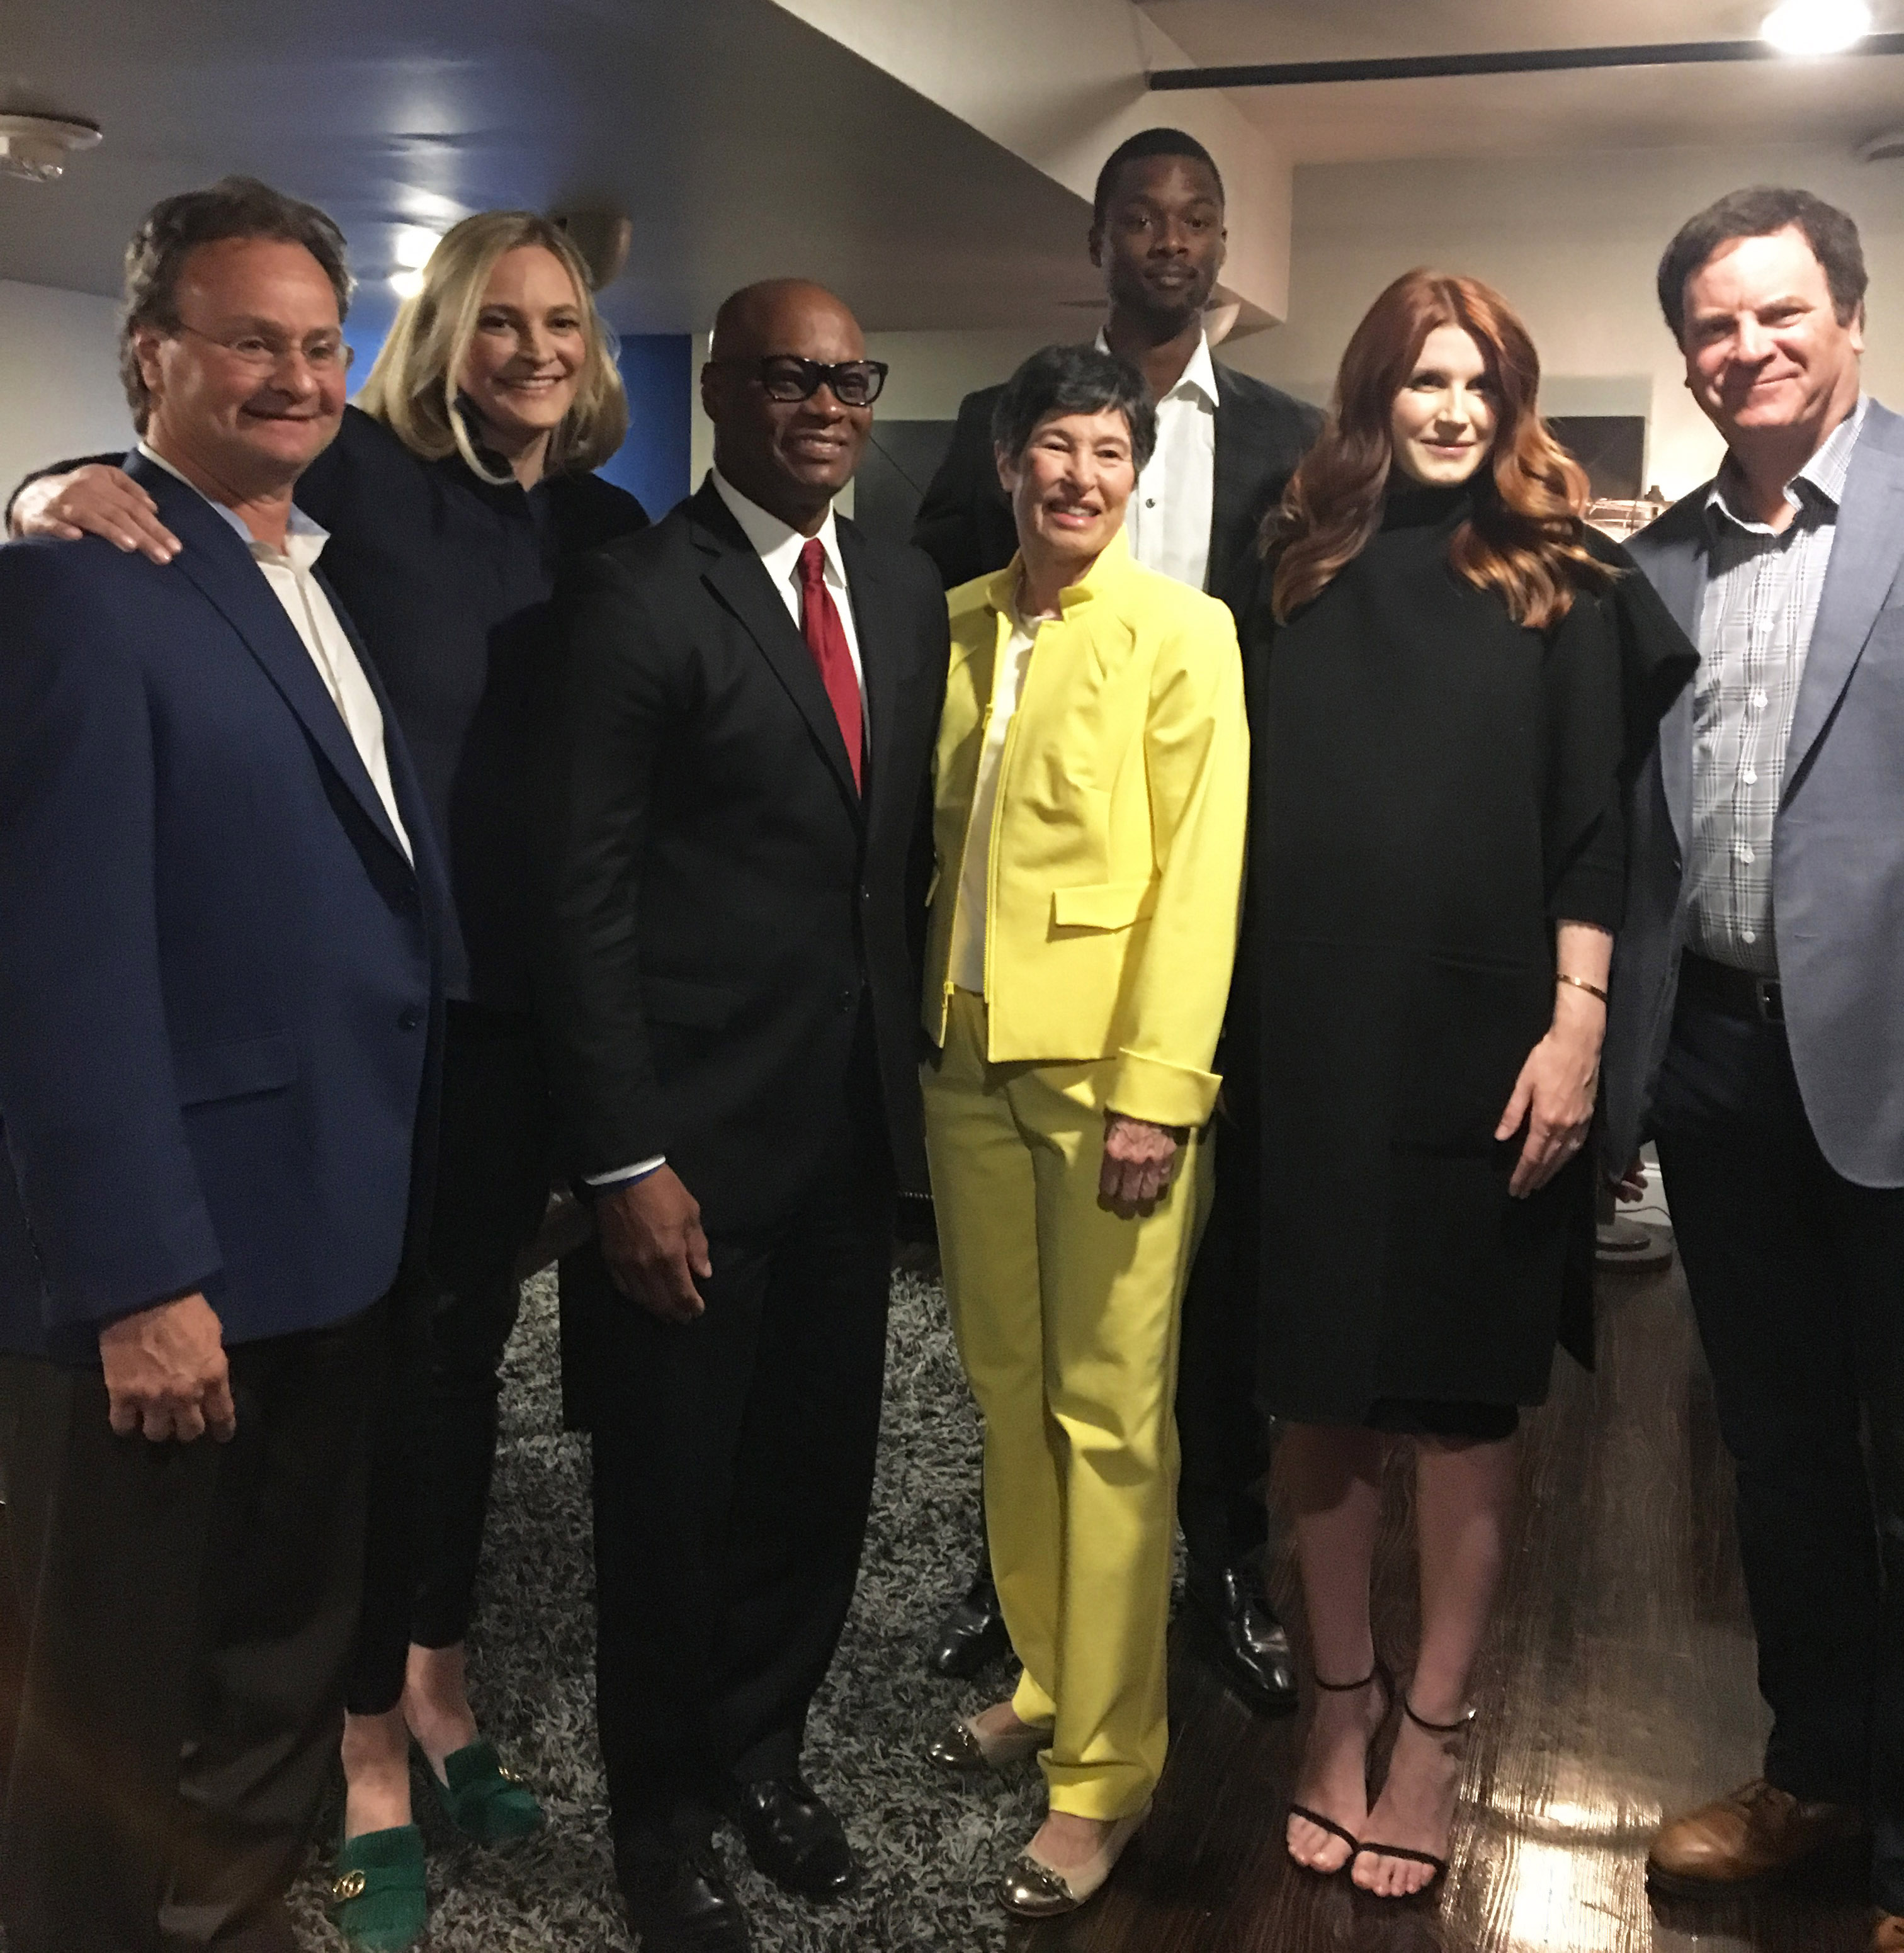 Emcee Ken Barth, United Way CEO Jennifer Sampson, former Dallas Police Chief David Brown, philanthropist Lyda Hill, Dallas Maverick Harrison Barnes, rewardStyle co-founder Amber Venz Box, and Broadcast.com co-founder Todd Wagner came together Thursday evening for OneUp the Pitch.